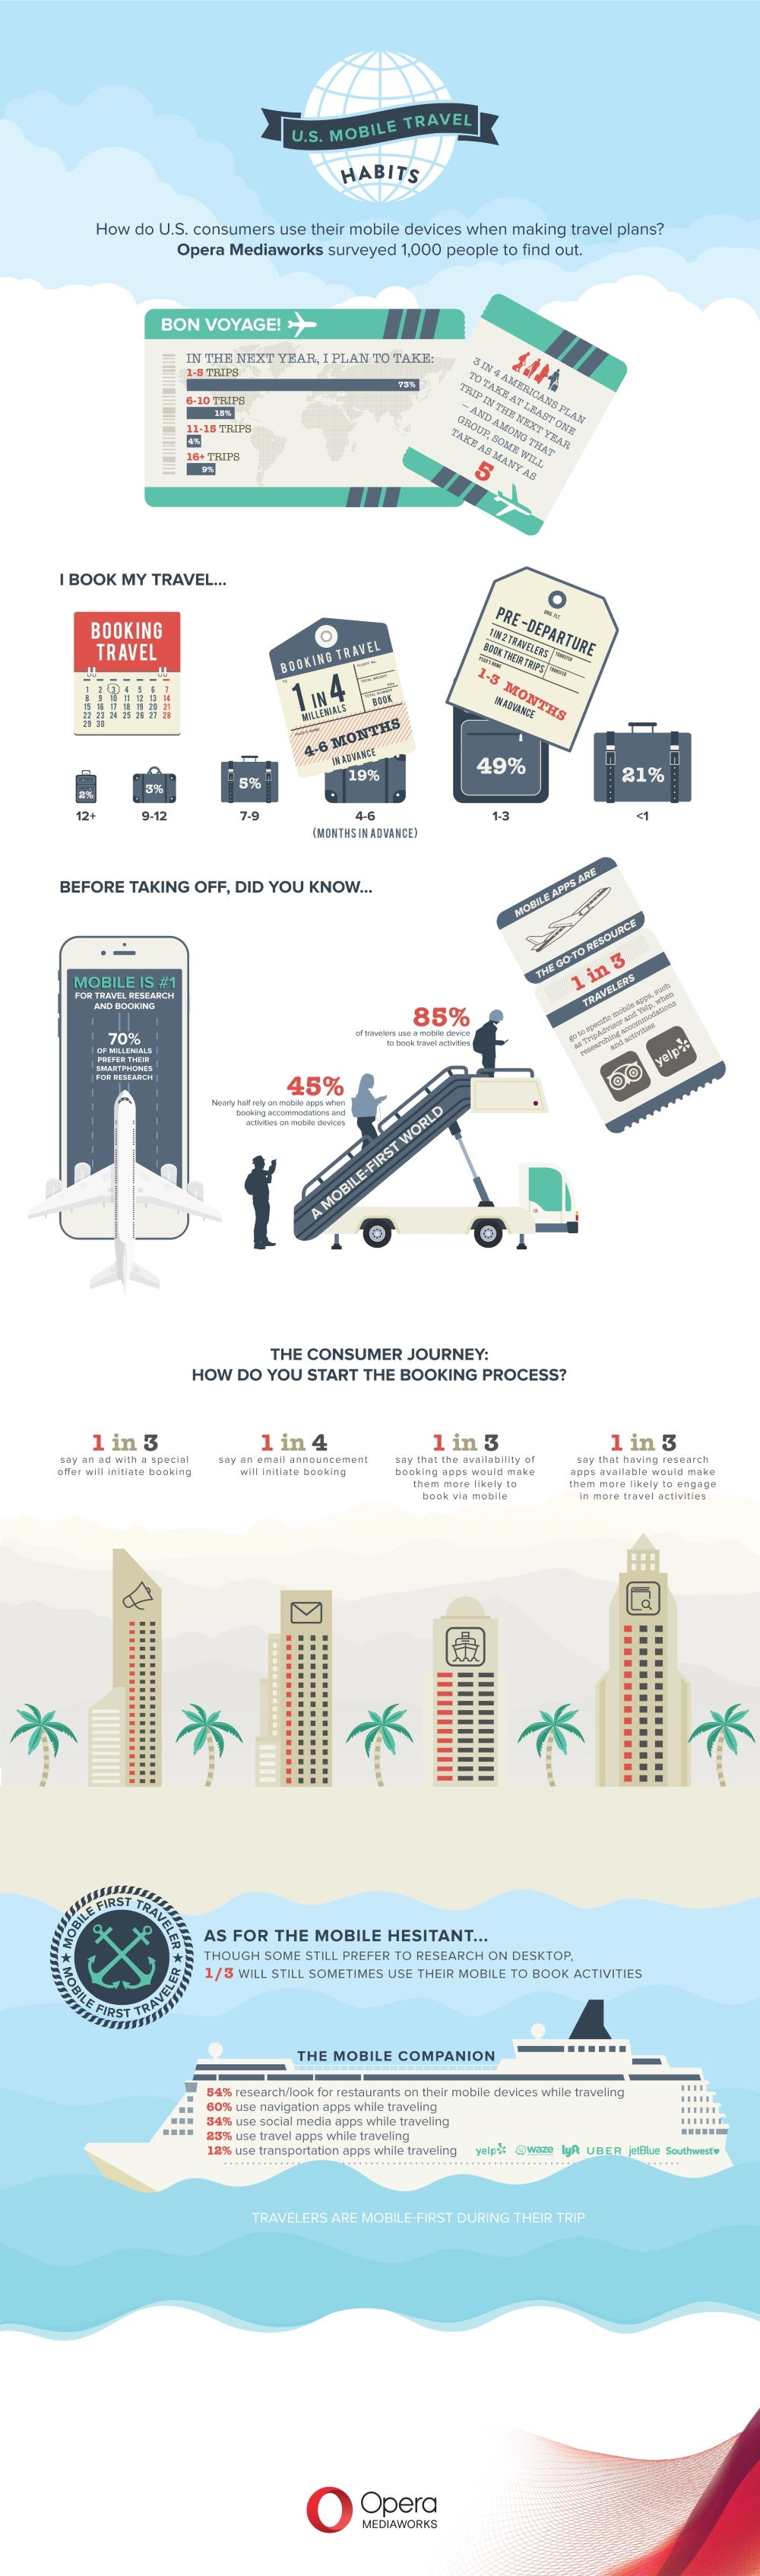 85 per Cent of Travellers Book Activities on Mobile (Infographic)